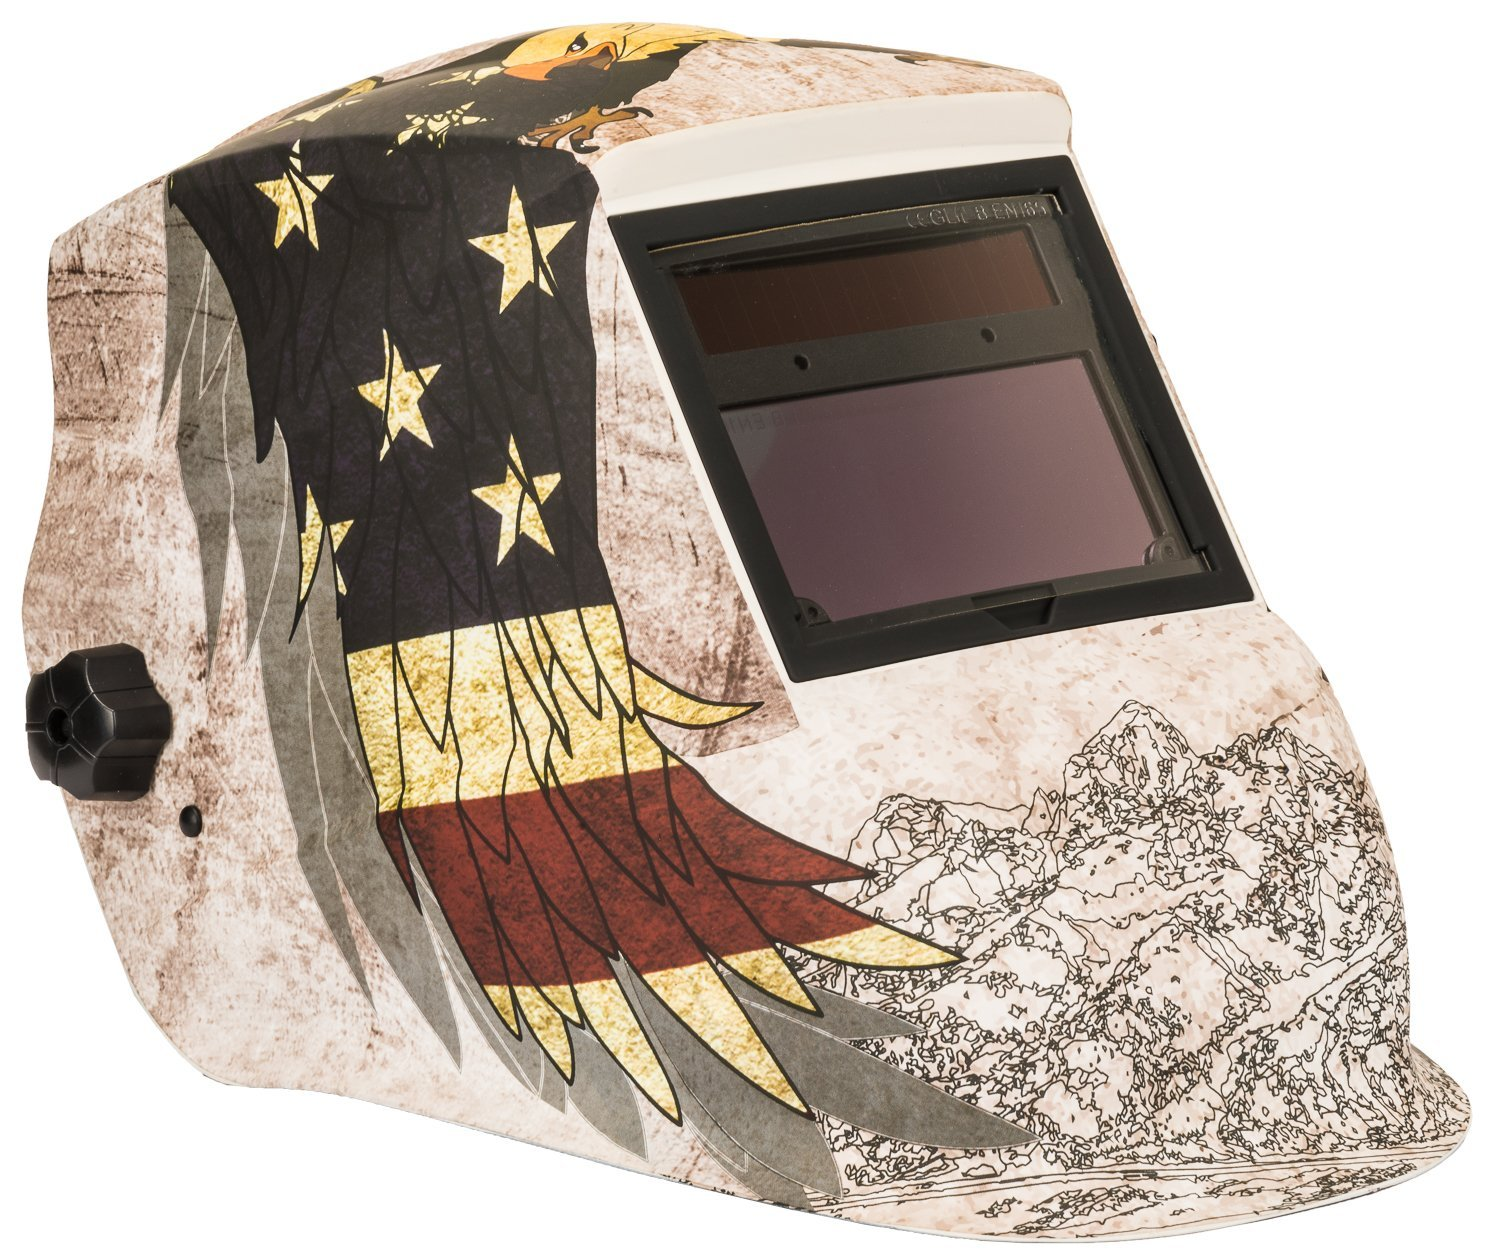 Forney 55708 Advantage Series Patriot Auto Darkening Welding Helmet